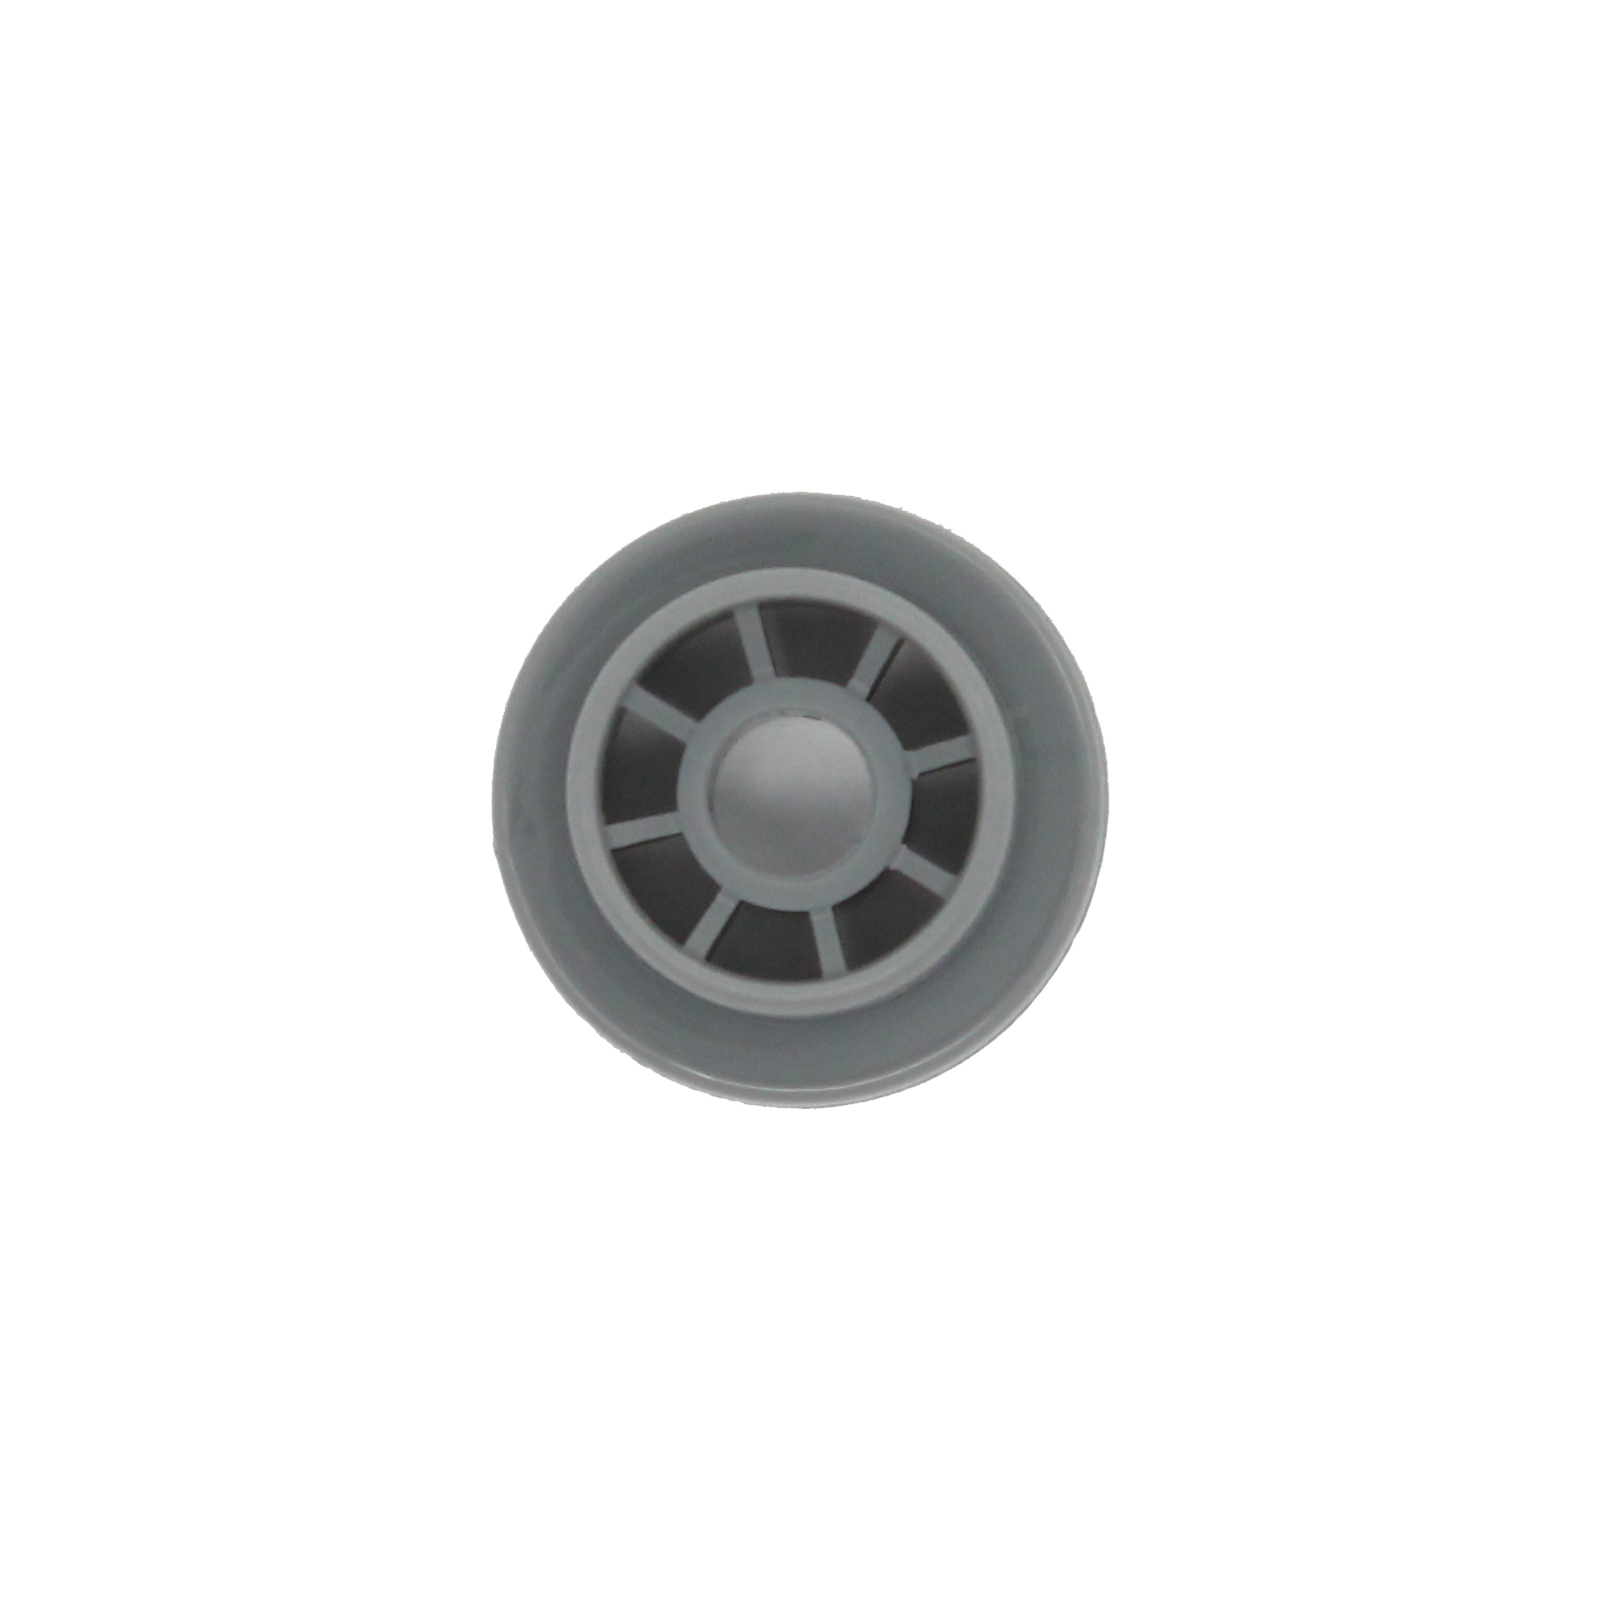 165314 Dishwasher Lower Dishrack Wheel Replacement for Bosch SHX56B05 UC/14 (FD 8211-) Dishwasher - Compatible with 00165314 Lower Rack Roller - UpStart Components Brand - image 4 de 4